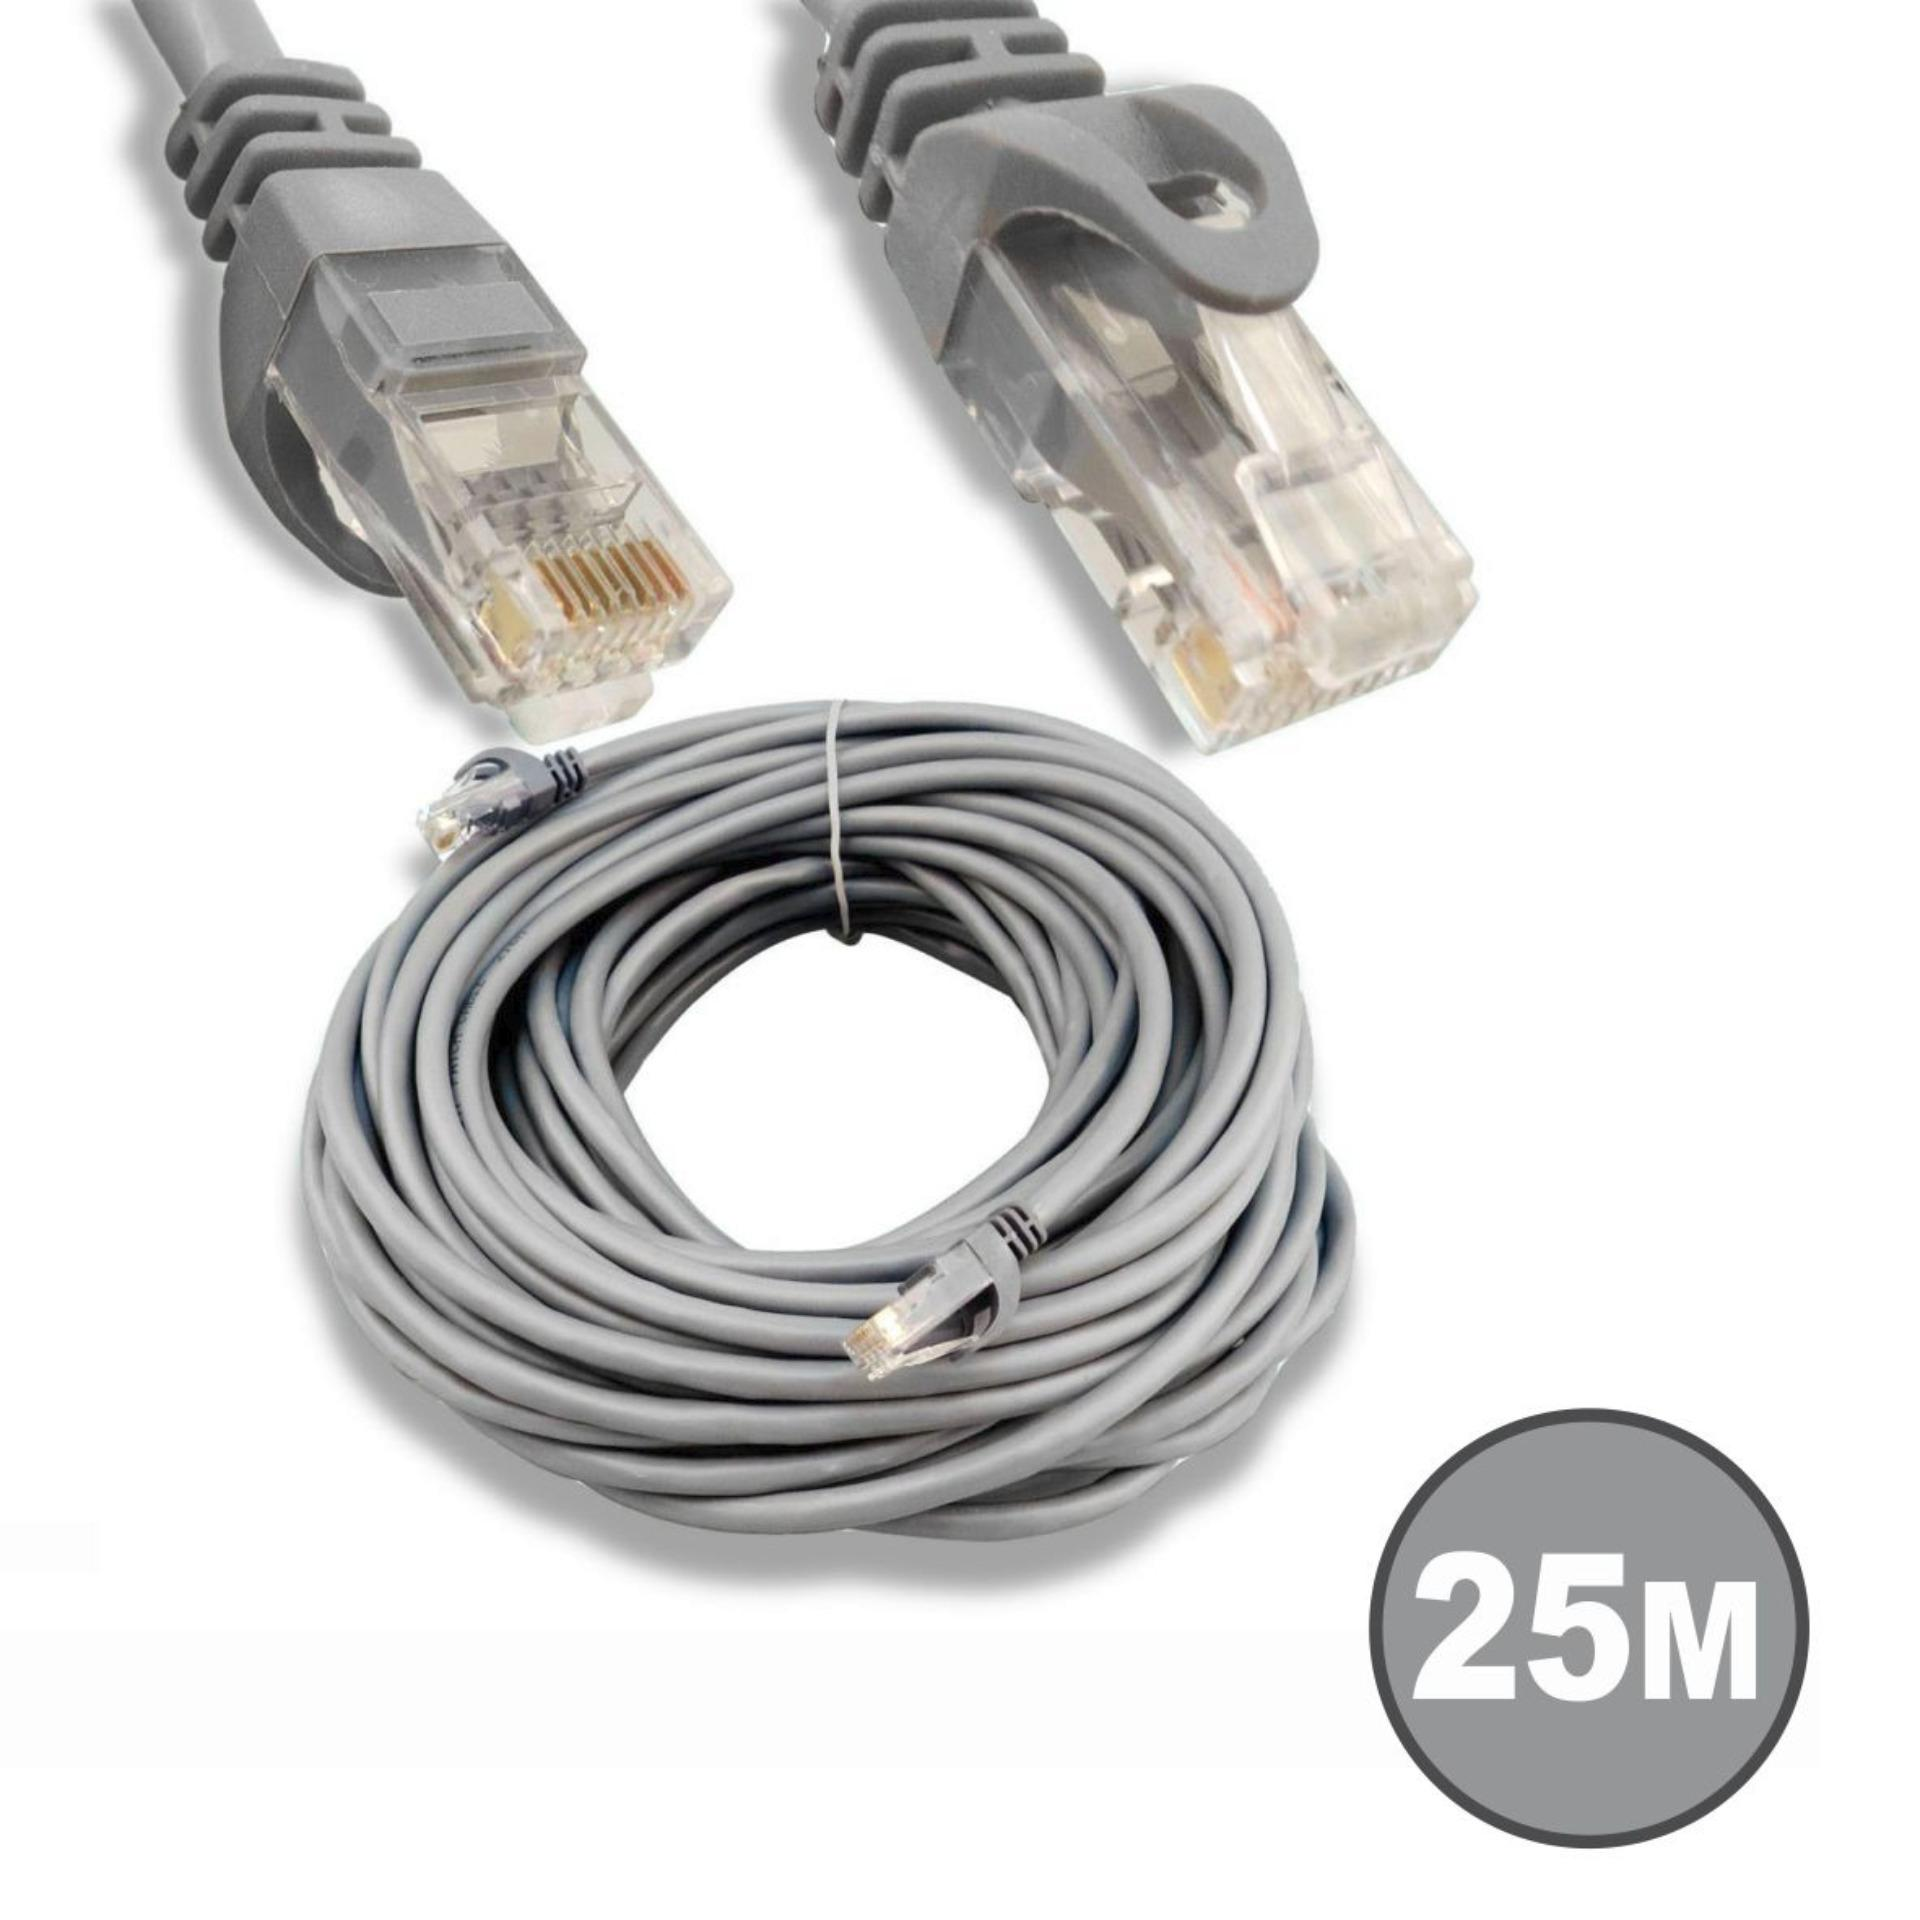 https://www.lazada.co.id/products/weitech-kabel-lan-25m-cat-5-kabel-utp-25-meter-pabrikan-high-quality-i236949057-s287044675.html